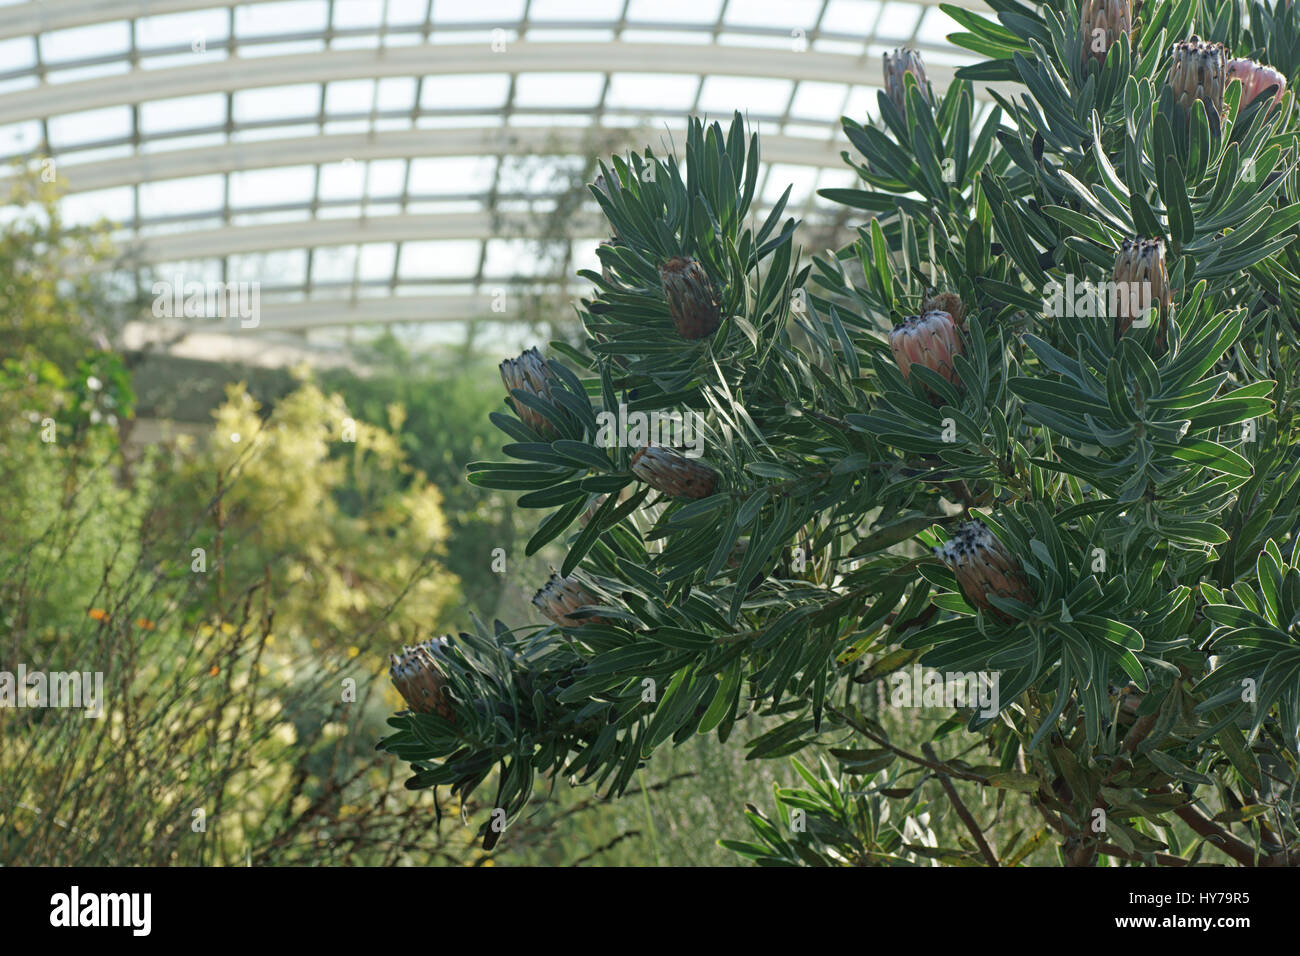 Protea in the Great glasshouse - Stock Image